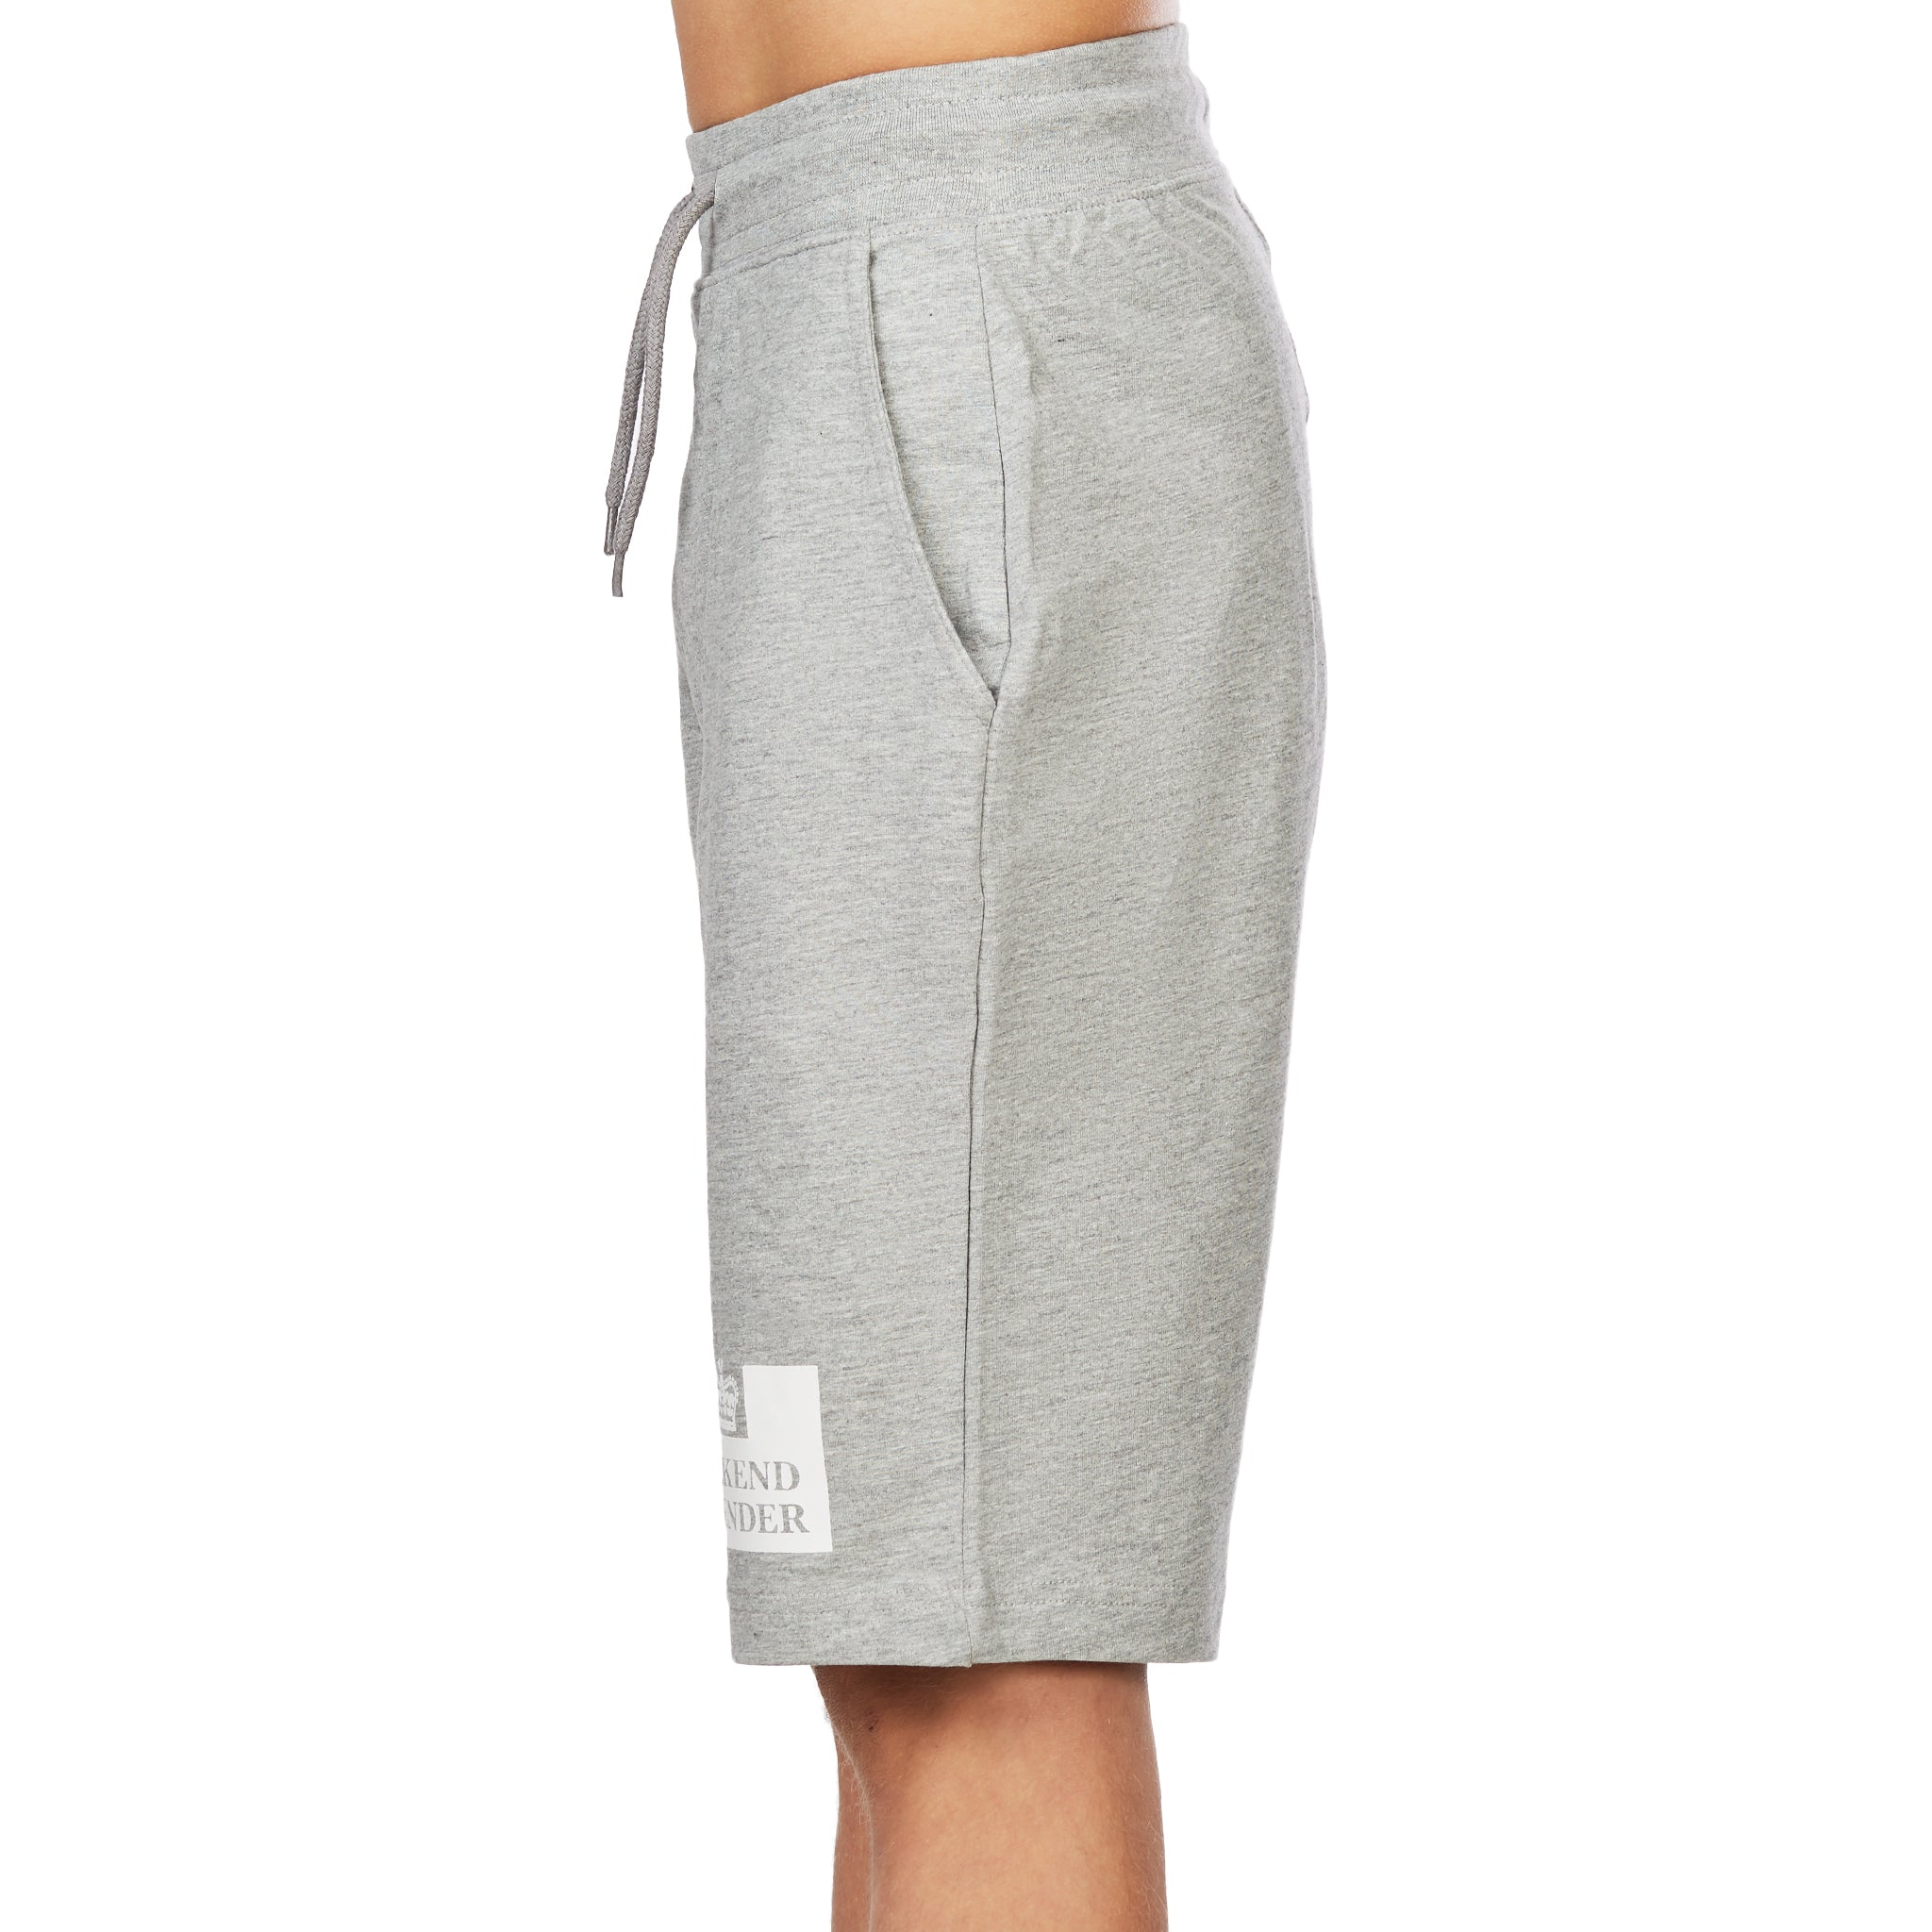 755fd9c82c Kids Action Shorts Grey Marl